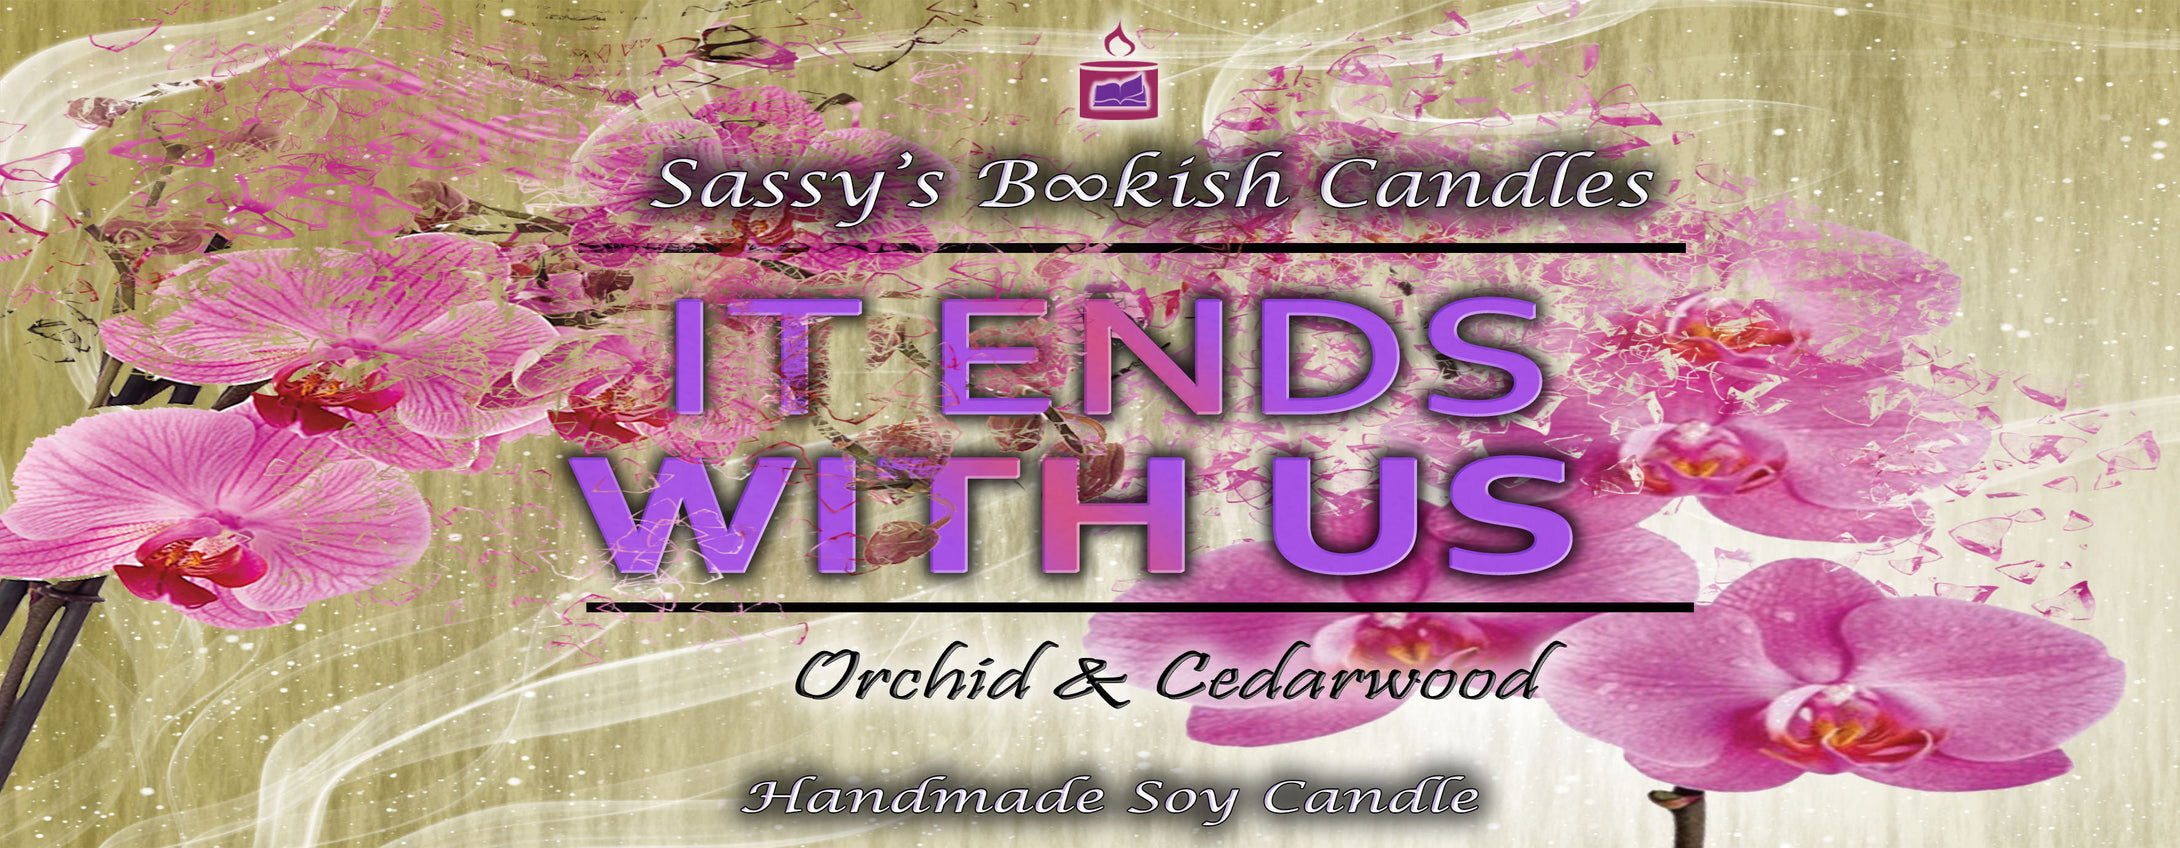 It Ends with us - Orchid & Cedarwood - Bookish Candle